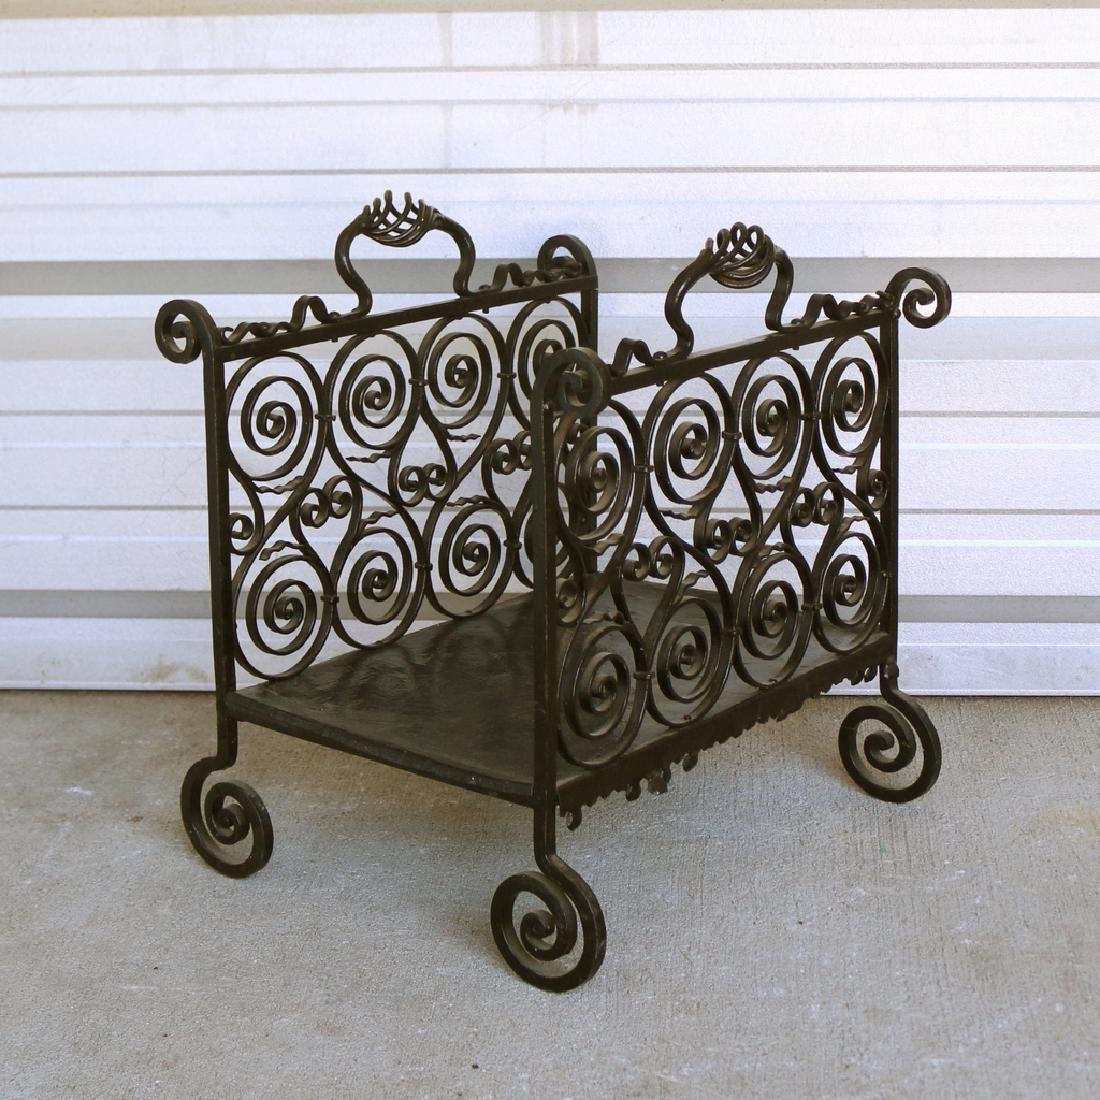 ORNATE WROUGHT-IRON LOG HOLDER